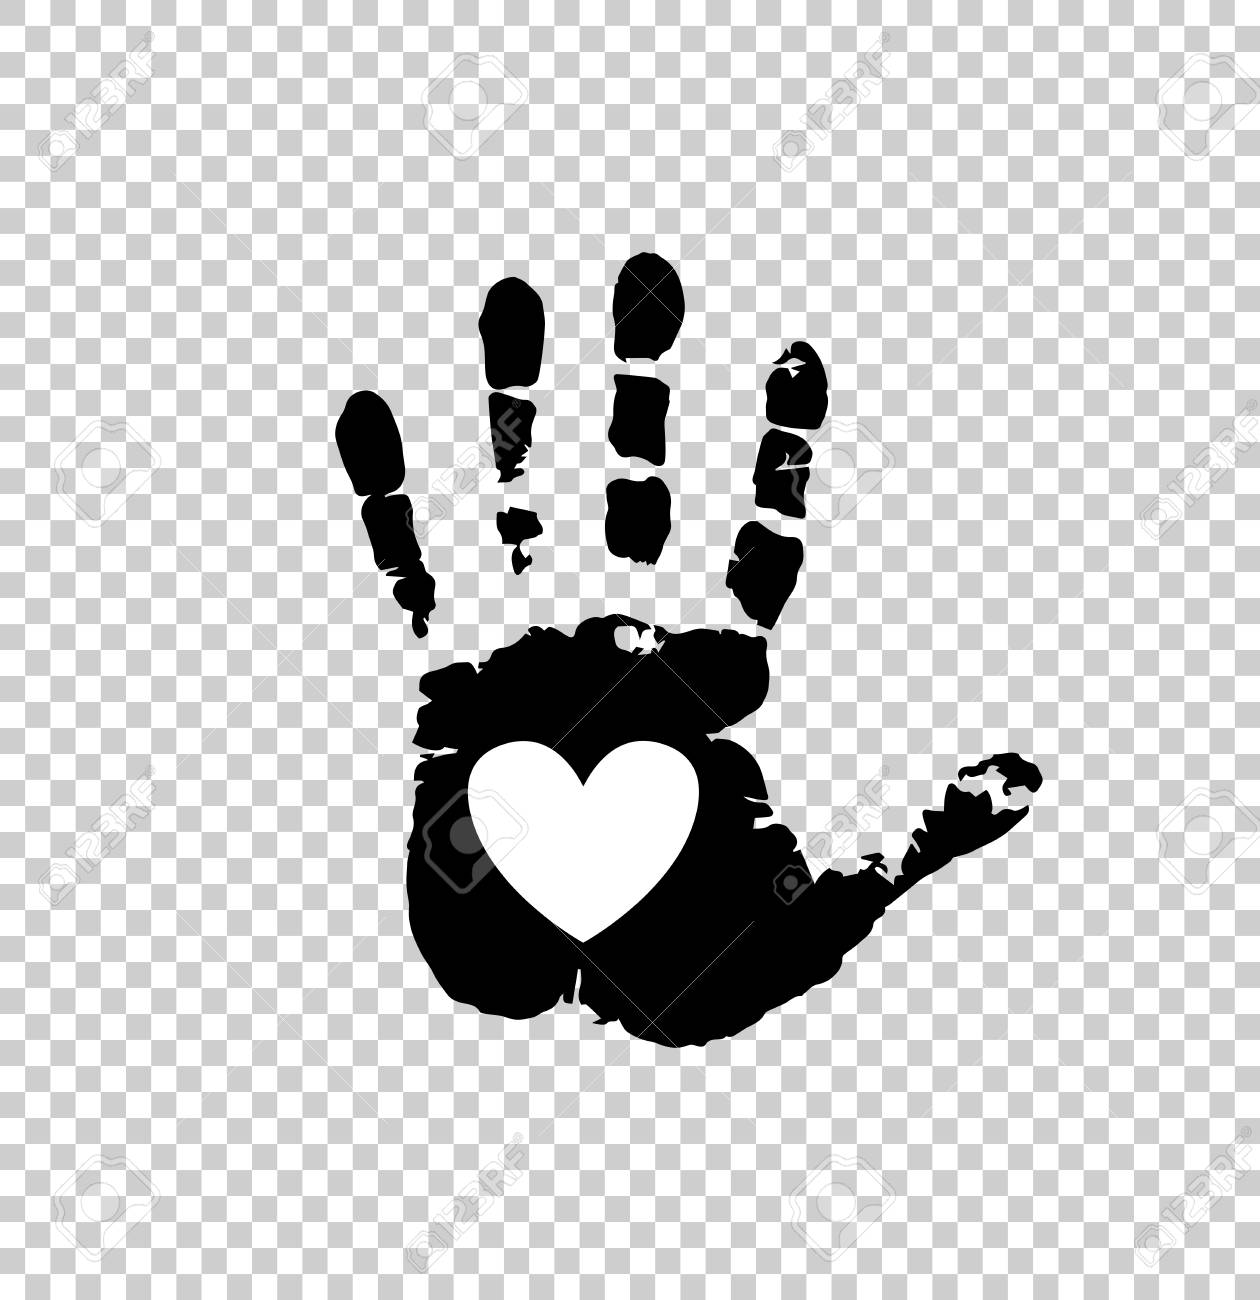 Black Silhouette Of Human Hand Print With Heart Sign In Open